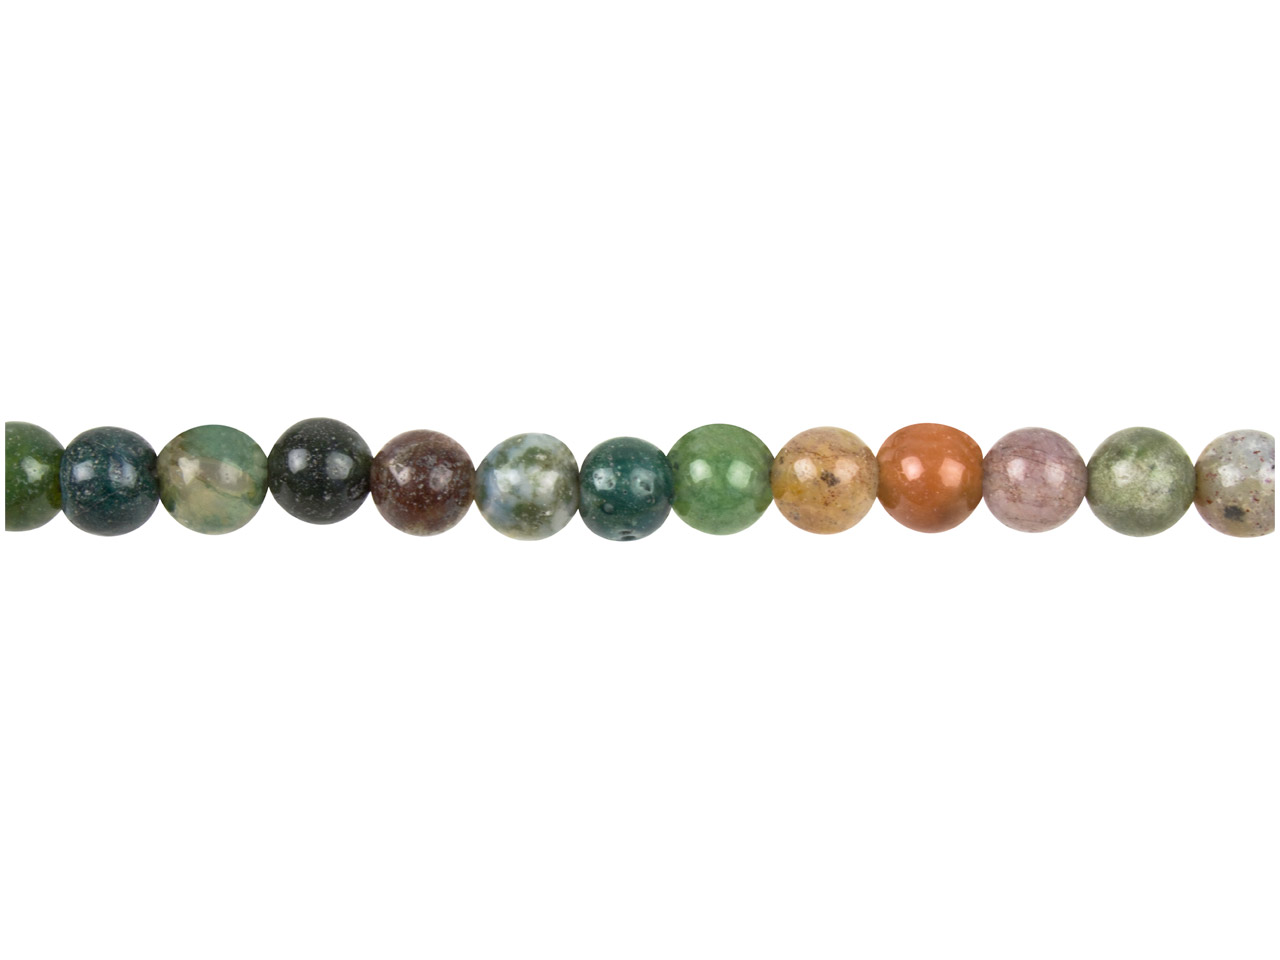 Indian Agate Semi Precious Round   Beads 6mm, 16